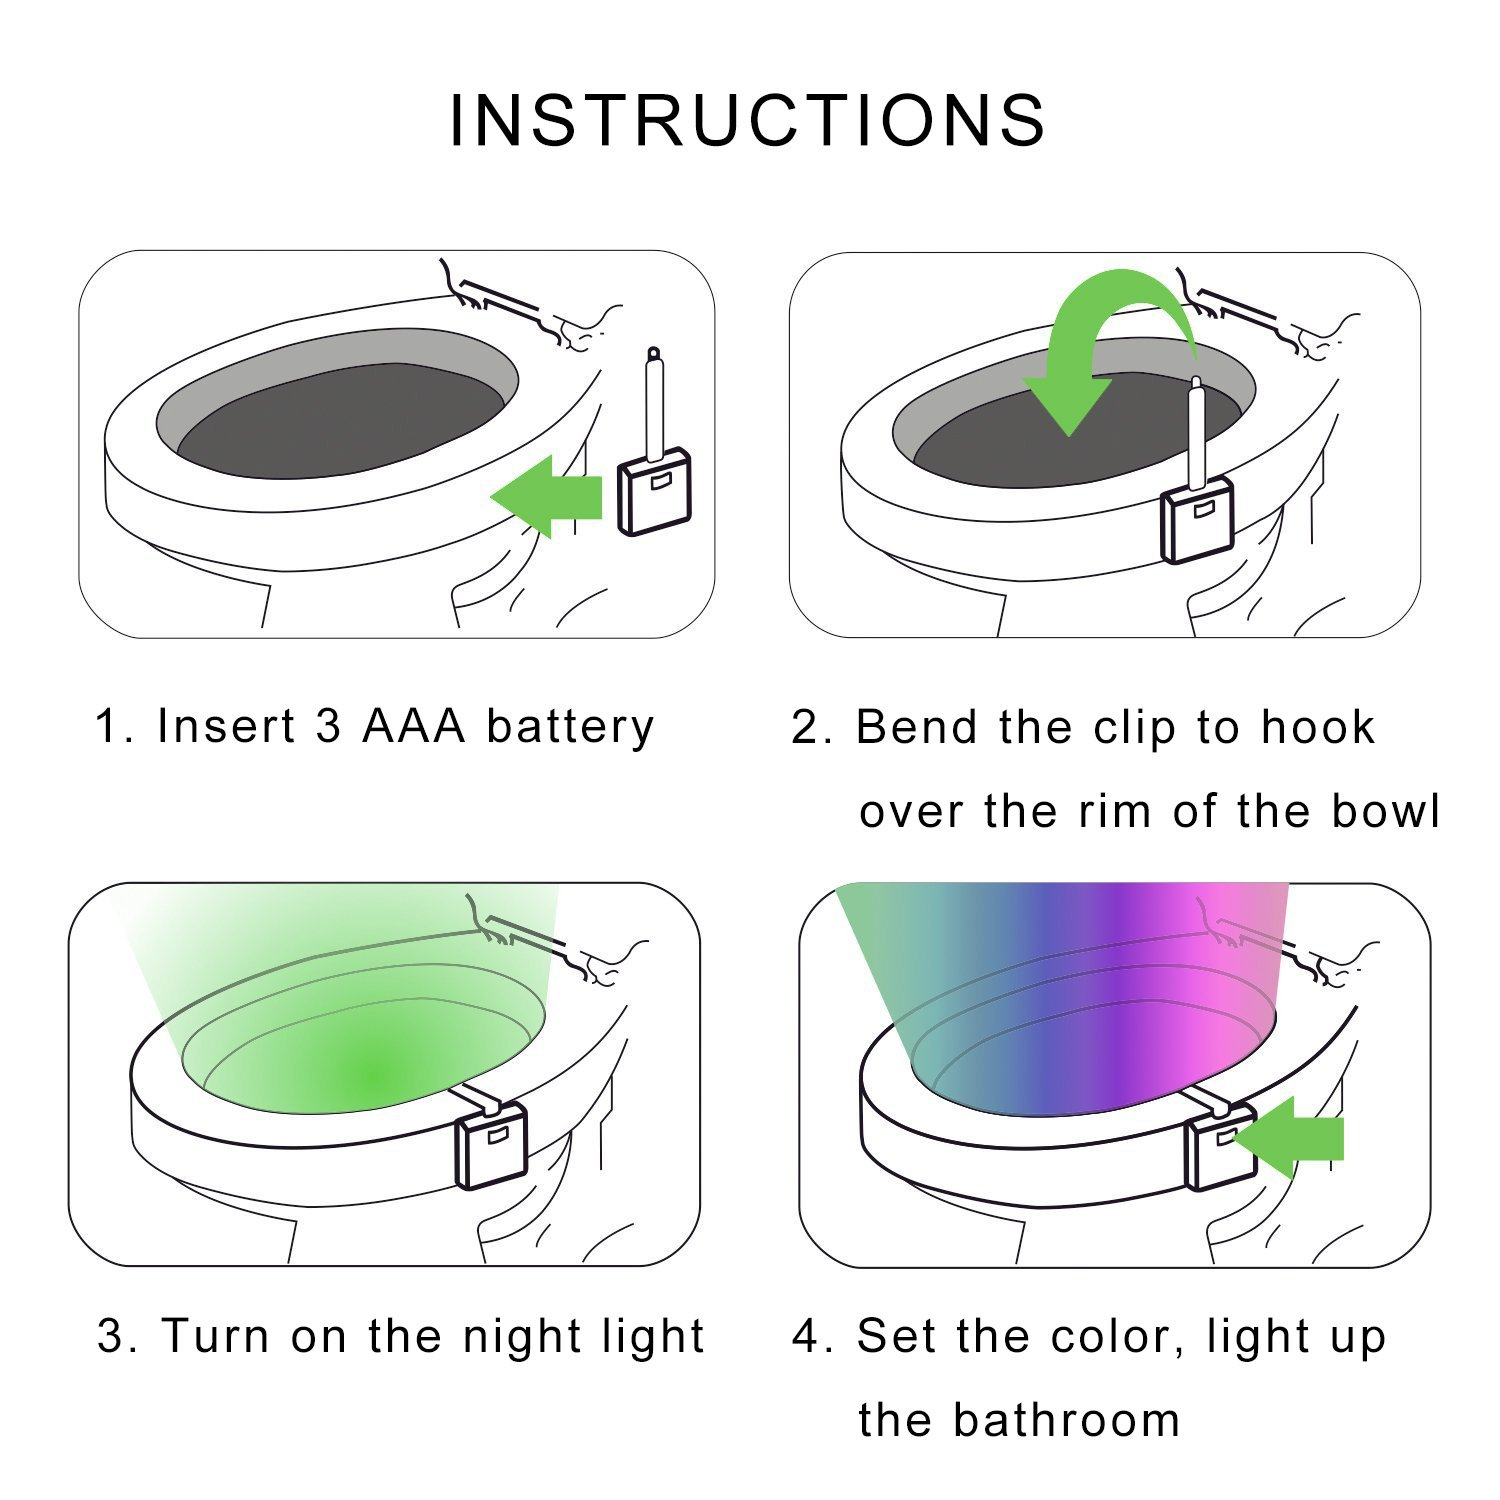 Toilet Bowl Light Motion Activated 8 Color Changing Toilet Night Light Seat Light Inside Toilet Bowl for Bathroom Washroom Potty Training Drimran Led Toilet Light Motion Sensor Light Detection